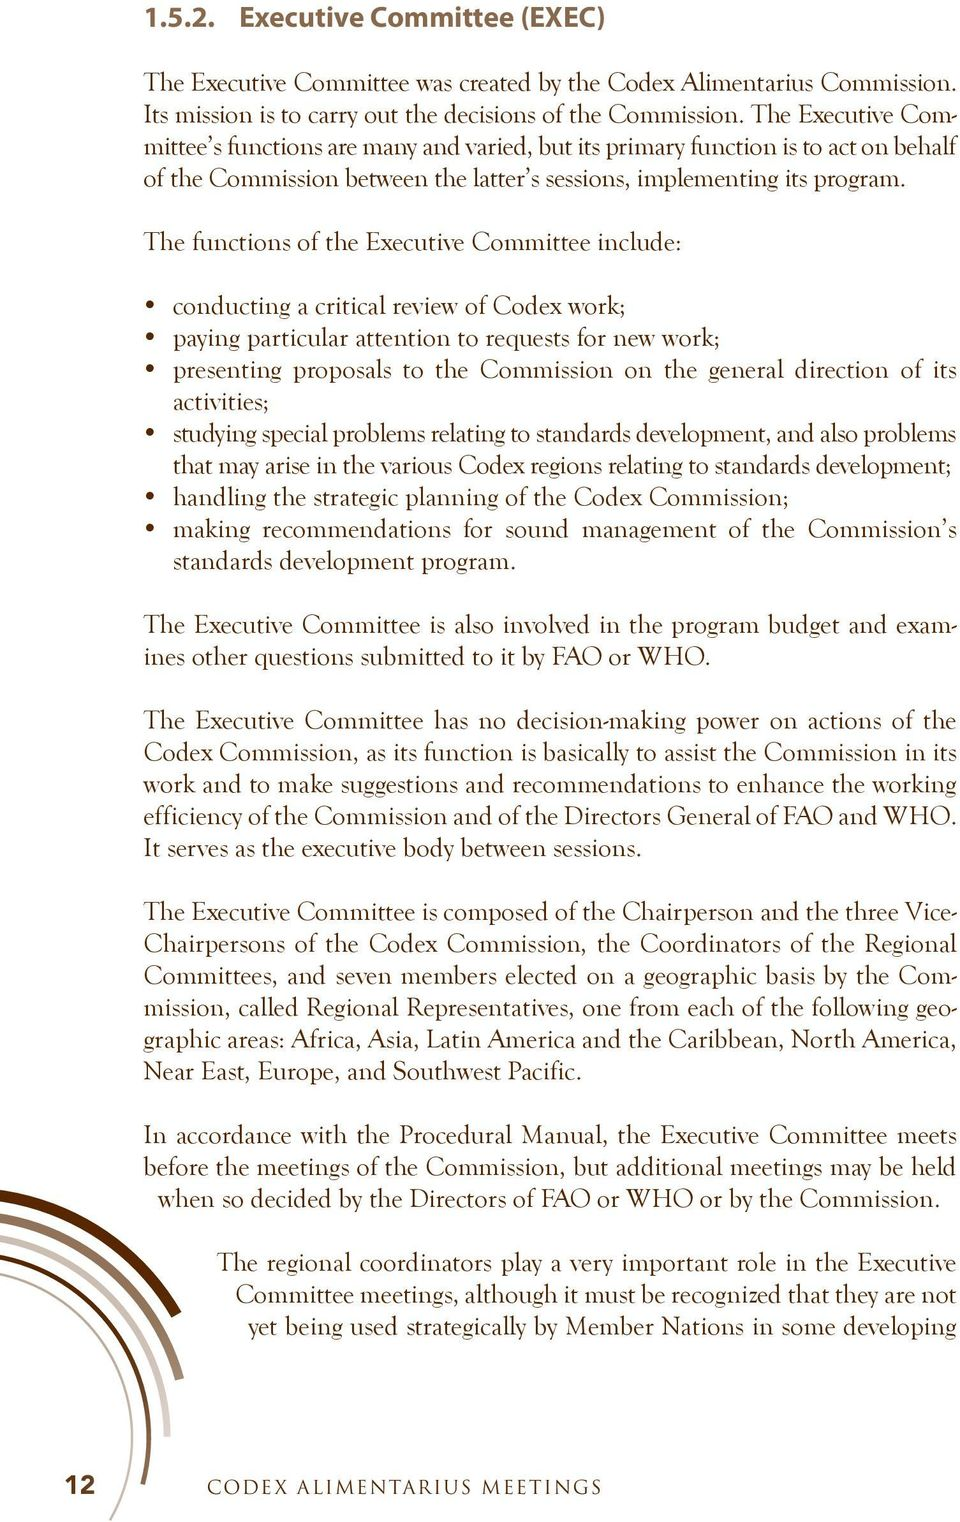 The functions of the Executive Committee include: conducting a critical review of Codex work; paying particular attention to requests for new work; presenting proposals to the Commission on the